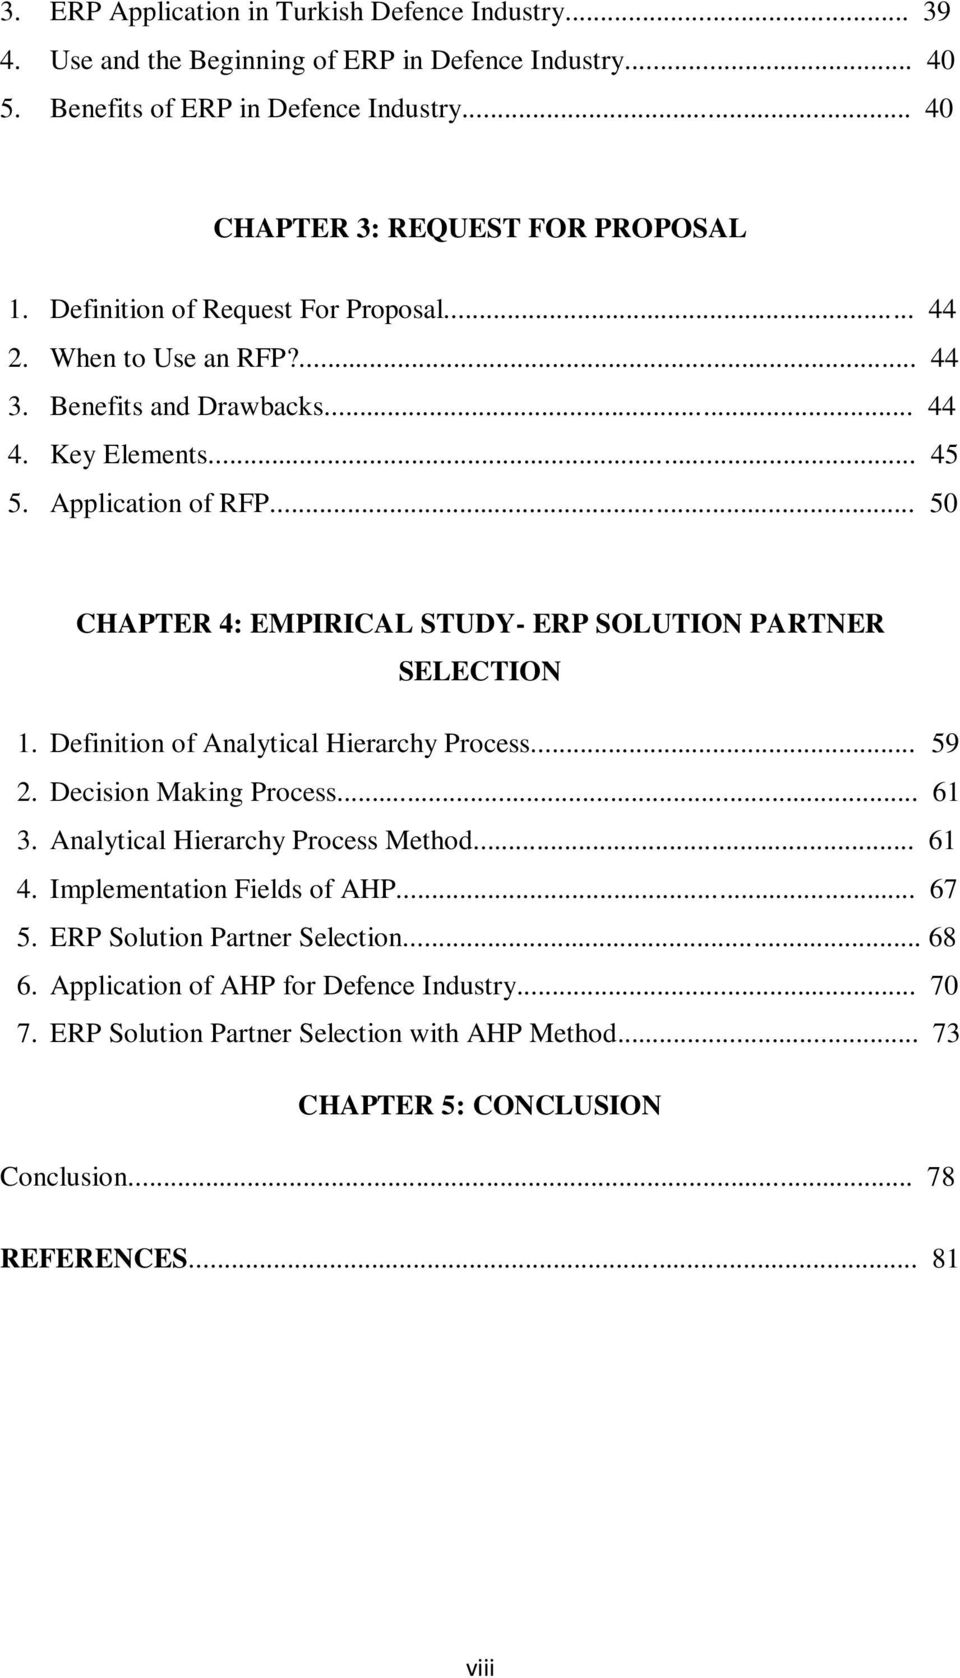 .. 50 CHAPTER 4: EMPIRICAL STUDY- ERP SOLUTION PARTNER SELECTION 1. Definition of Analytical Hierarchy Process... 59 2. Decision Making Process... 61 3. Analytical Hierarchy Process Method.